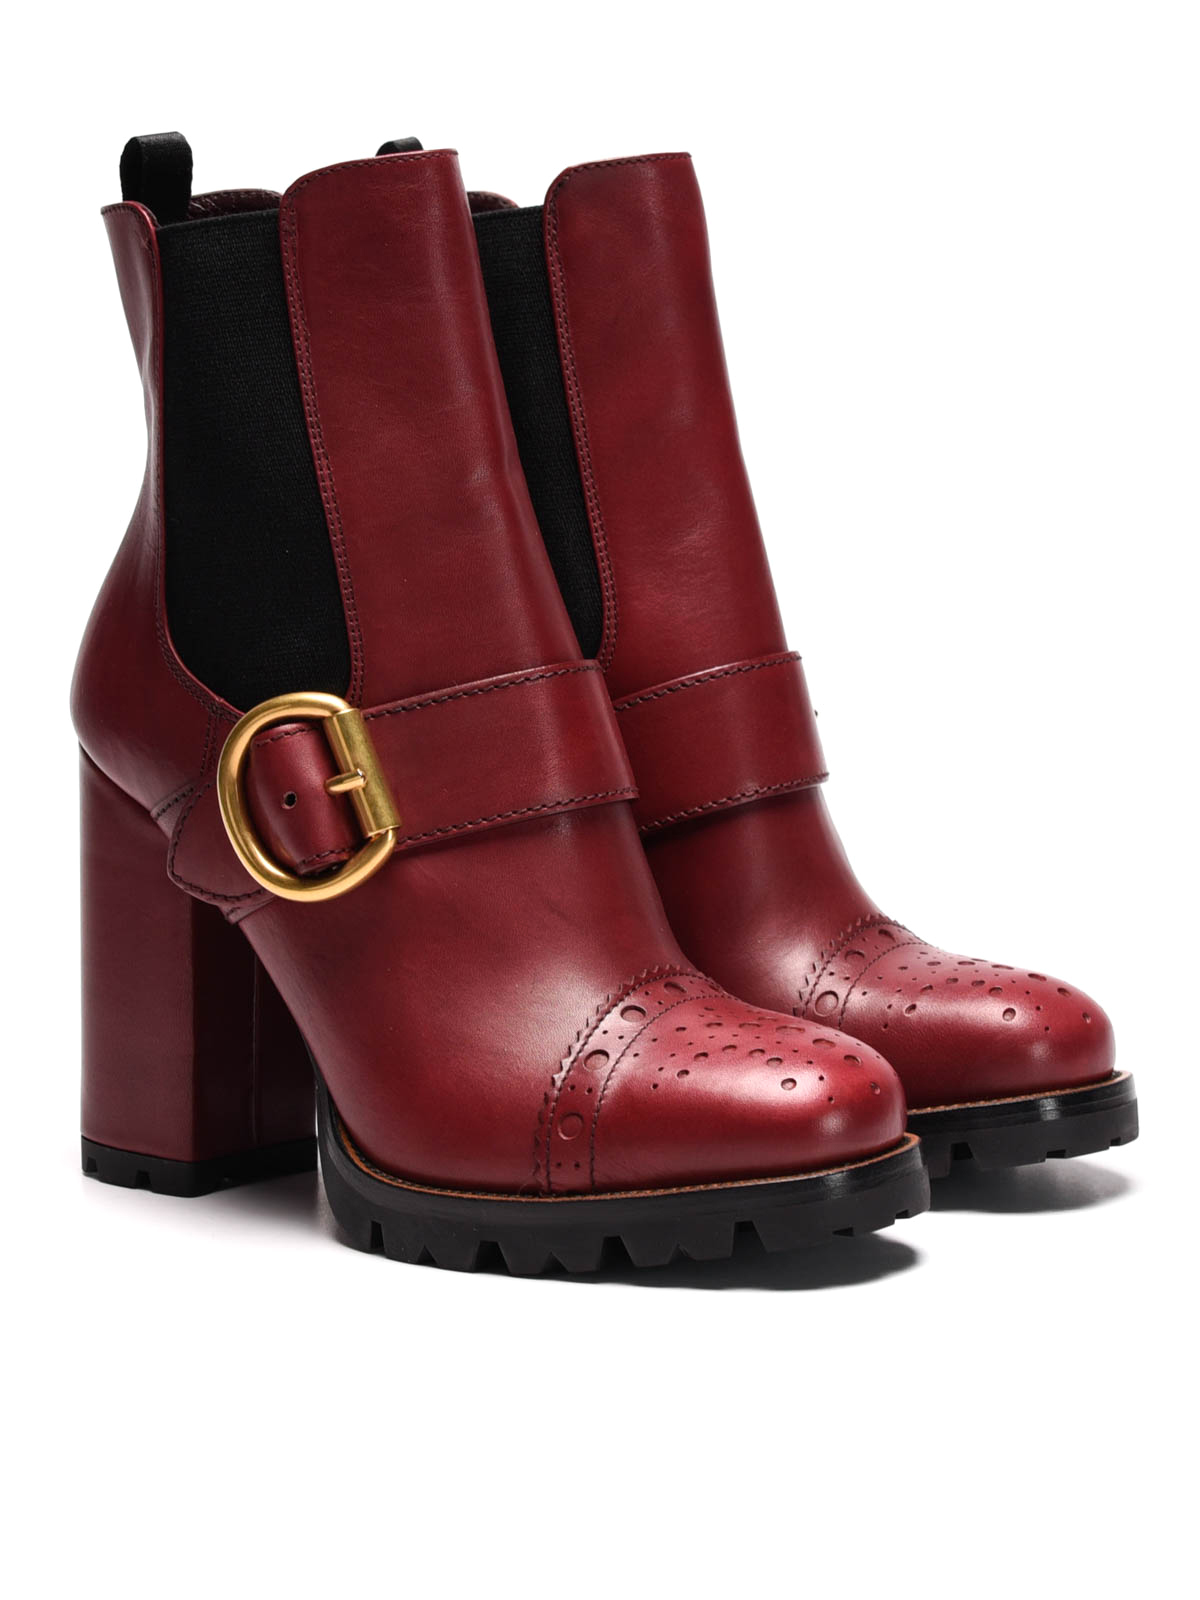 c74c90a66f Prada - Buckle detail leather booties - ankle boots - 1T139H3F33F0399